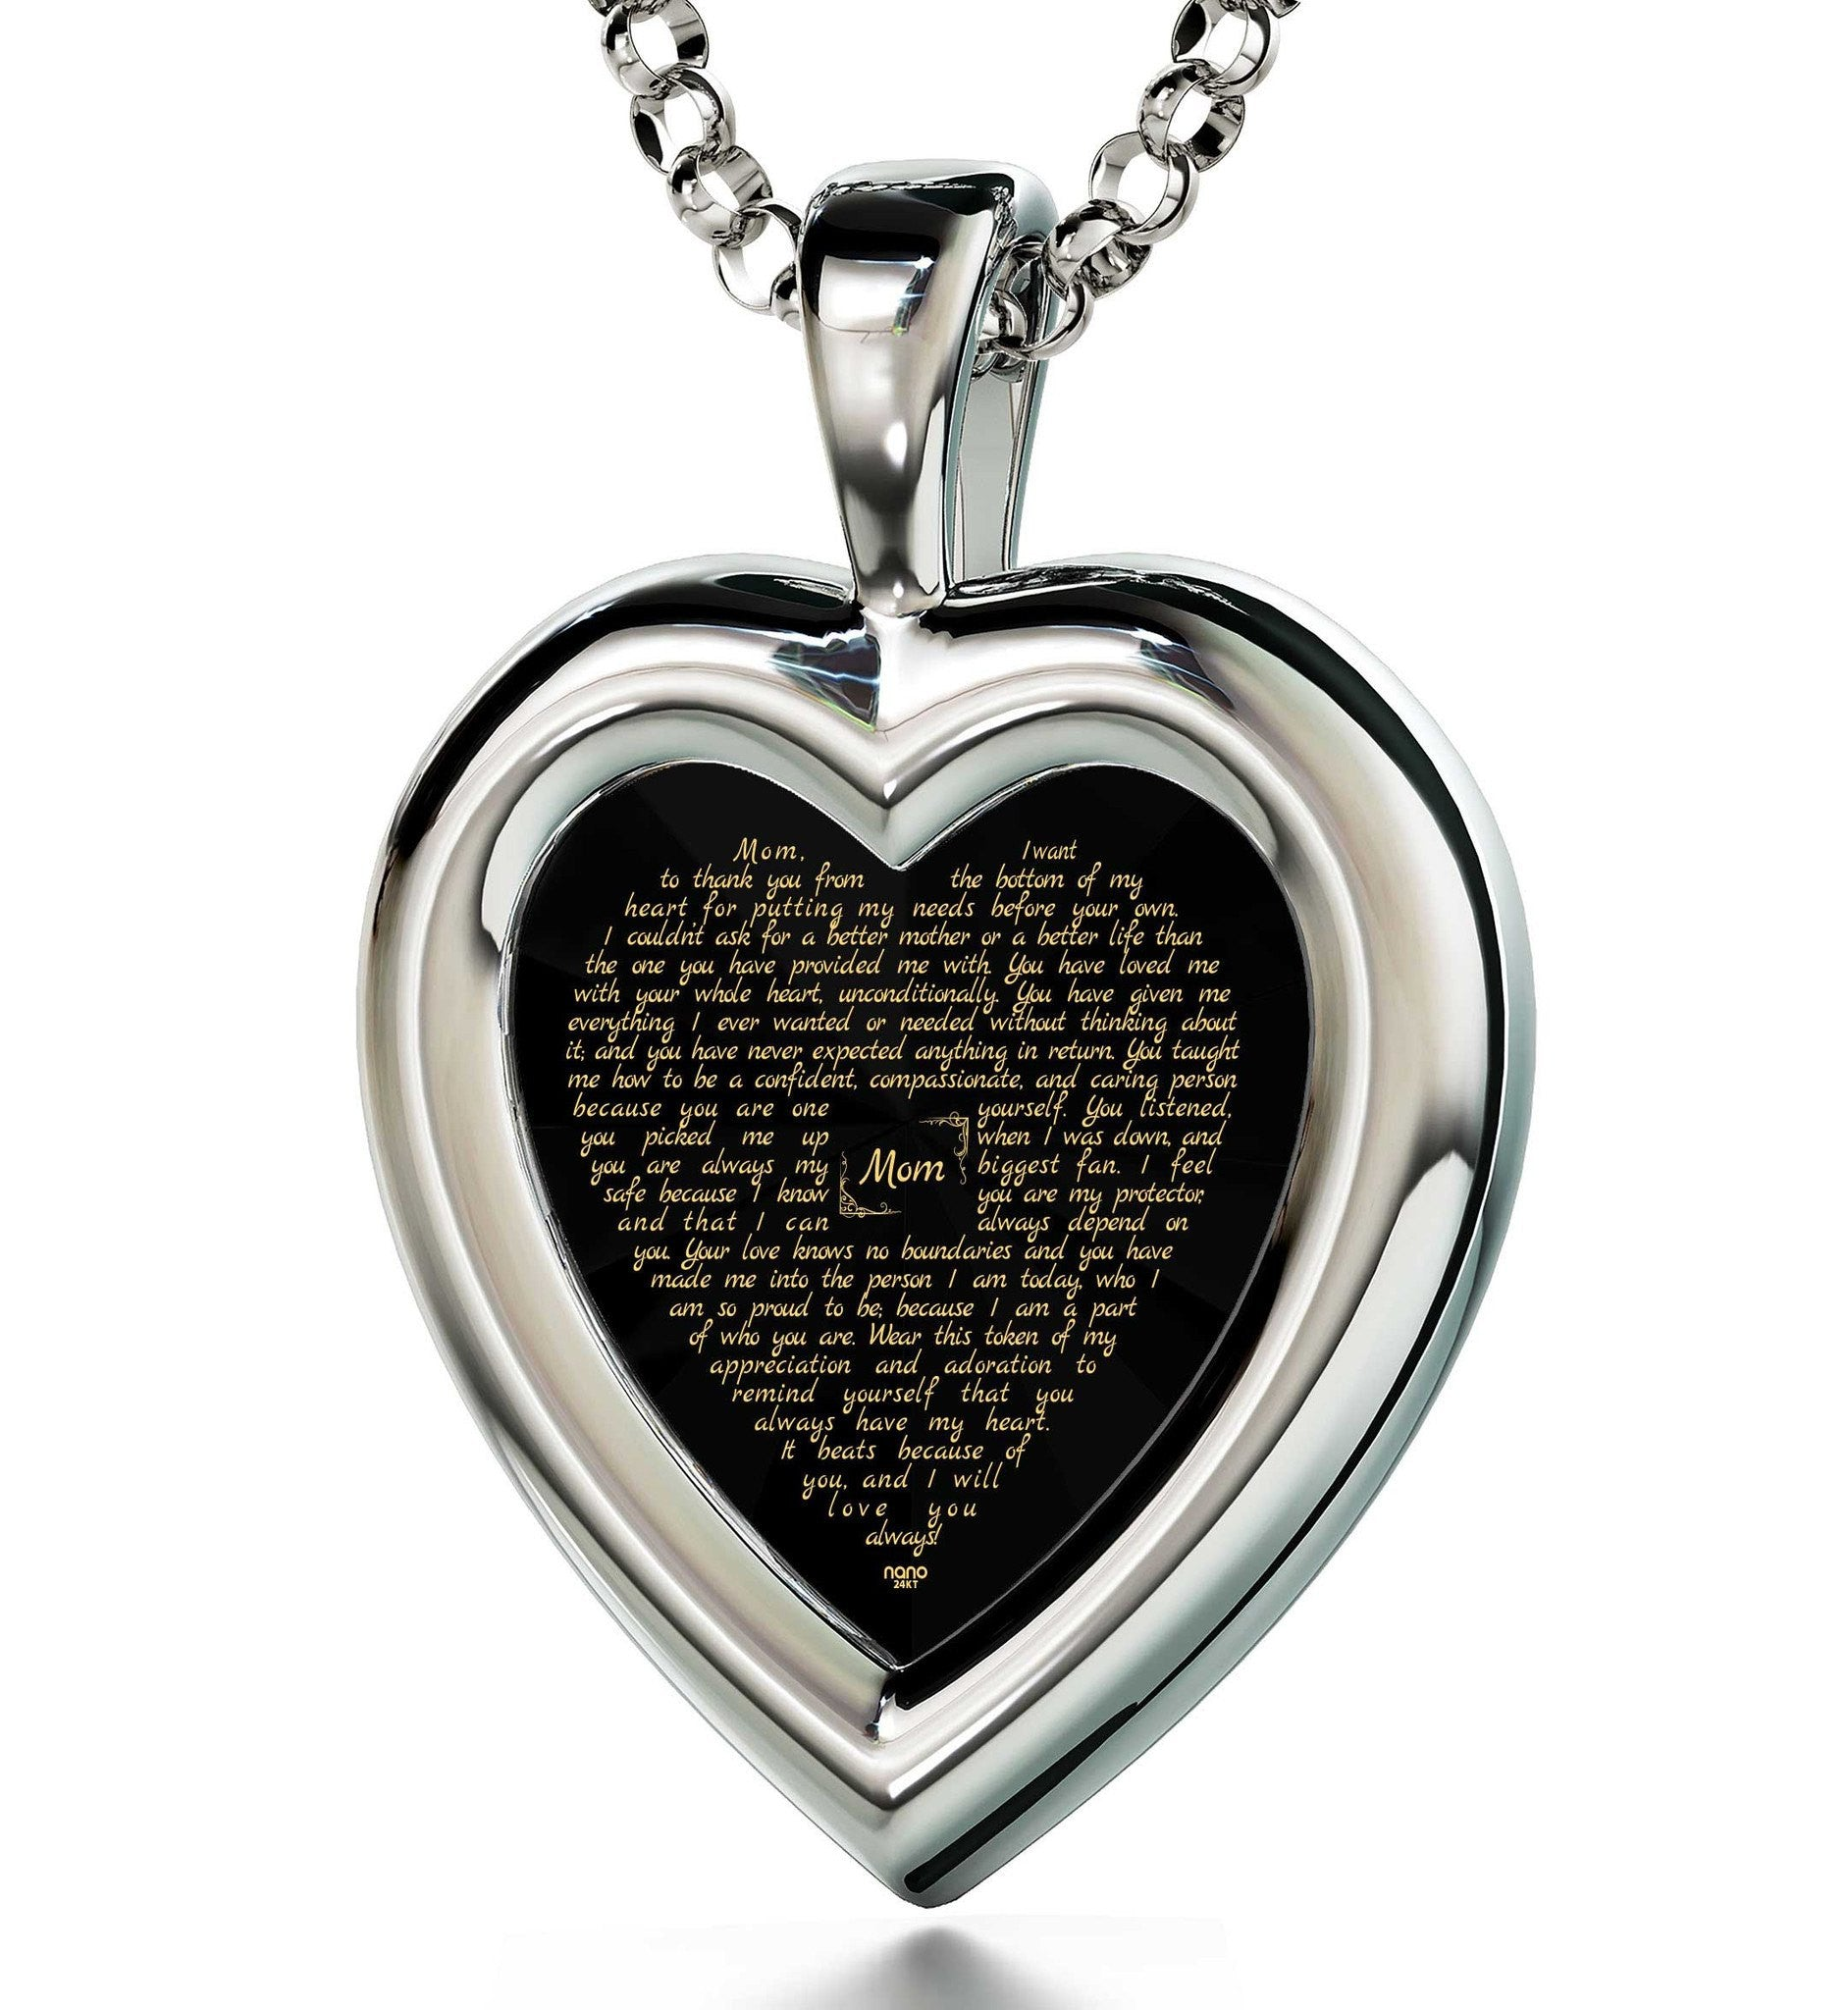 Christmas Presents Mom: 14k White Gold Necklace with Pendant, CZ Black Heart, Special Mother's Day Gifts